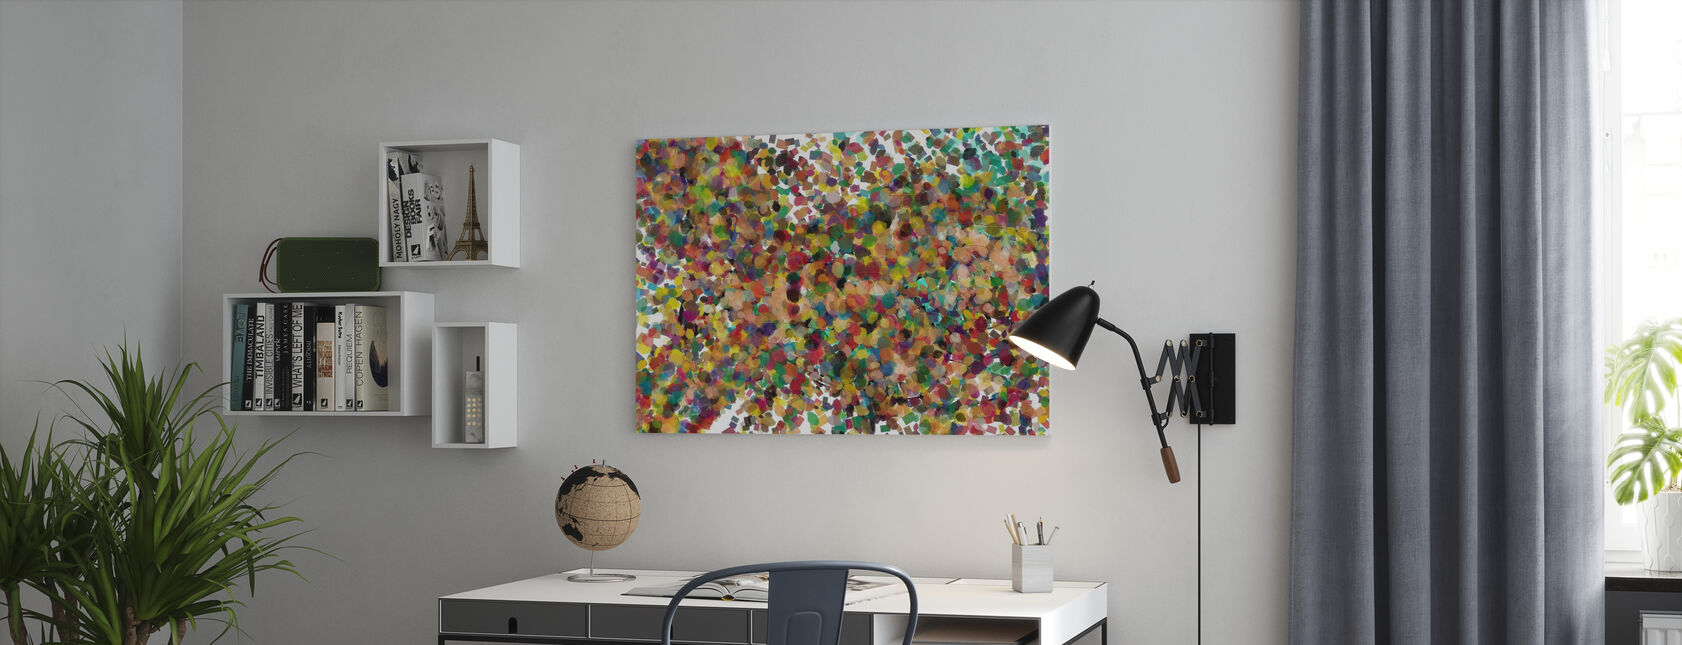 Pop Art Confetti - Canvas print - Office